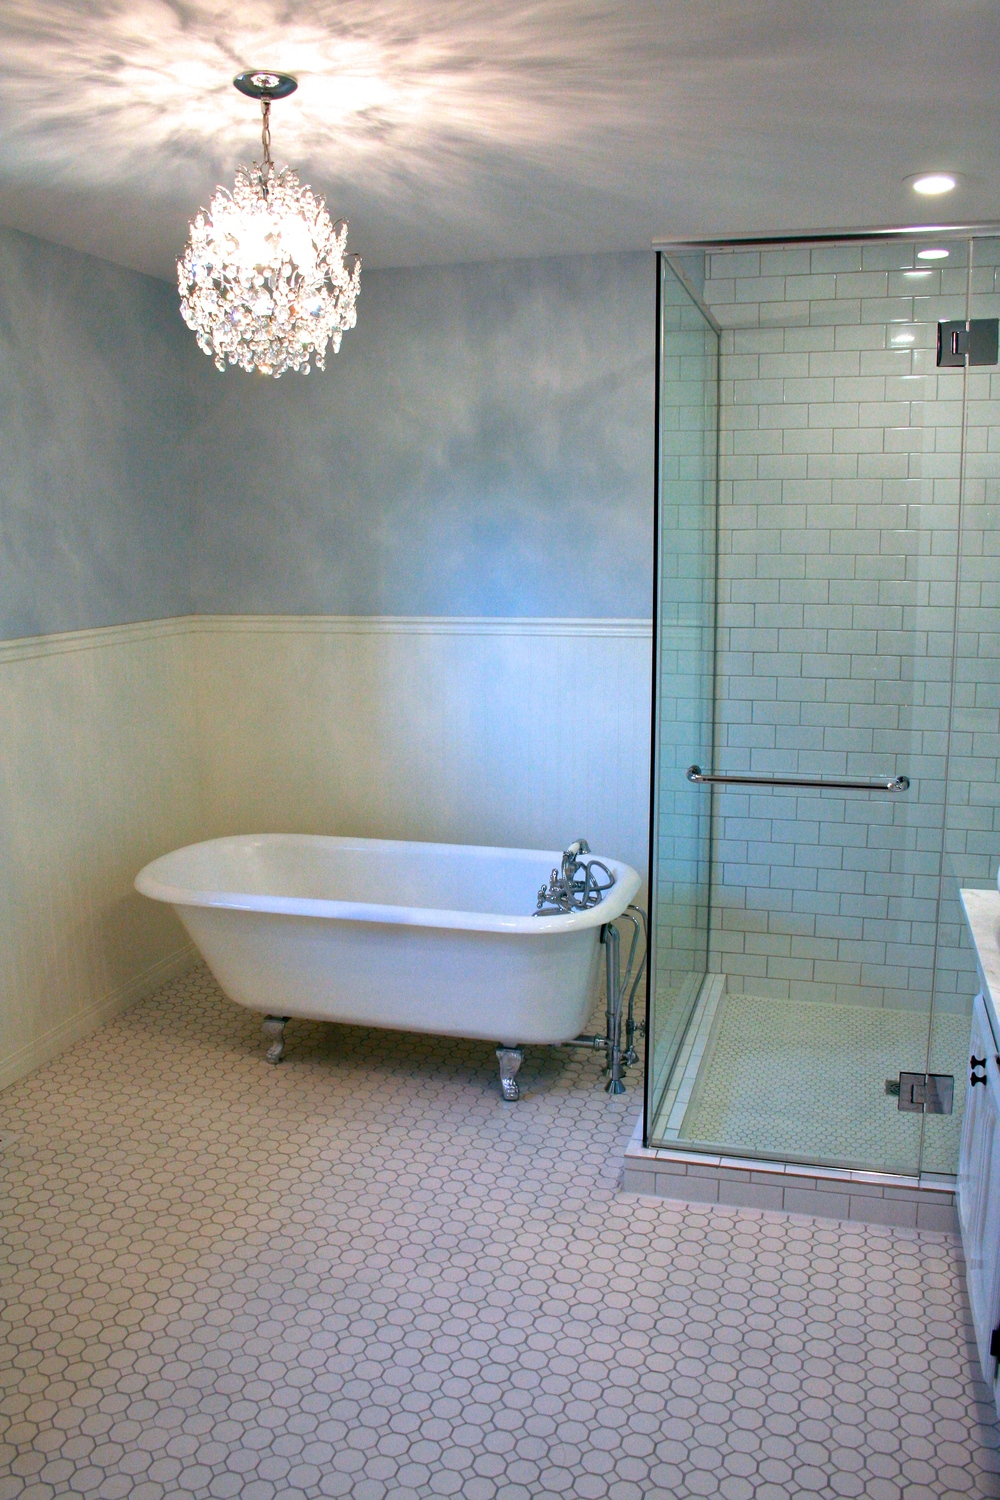 Bathroom Renovations & Remodels